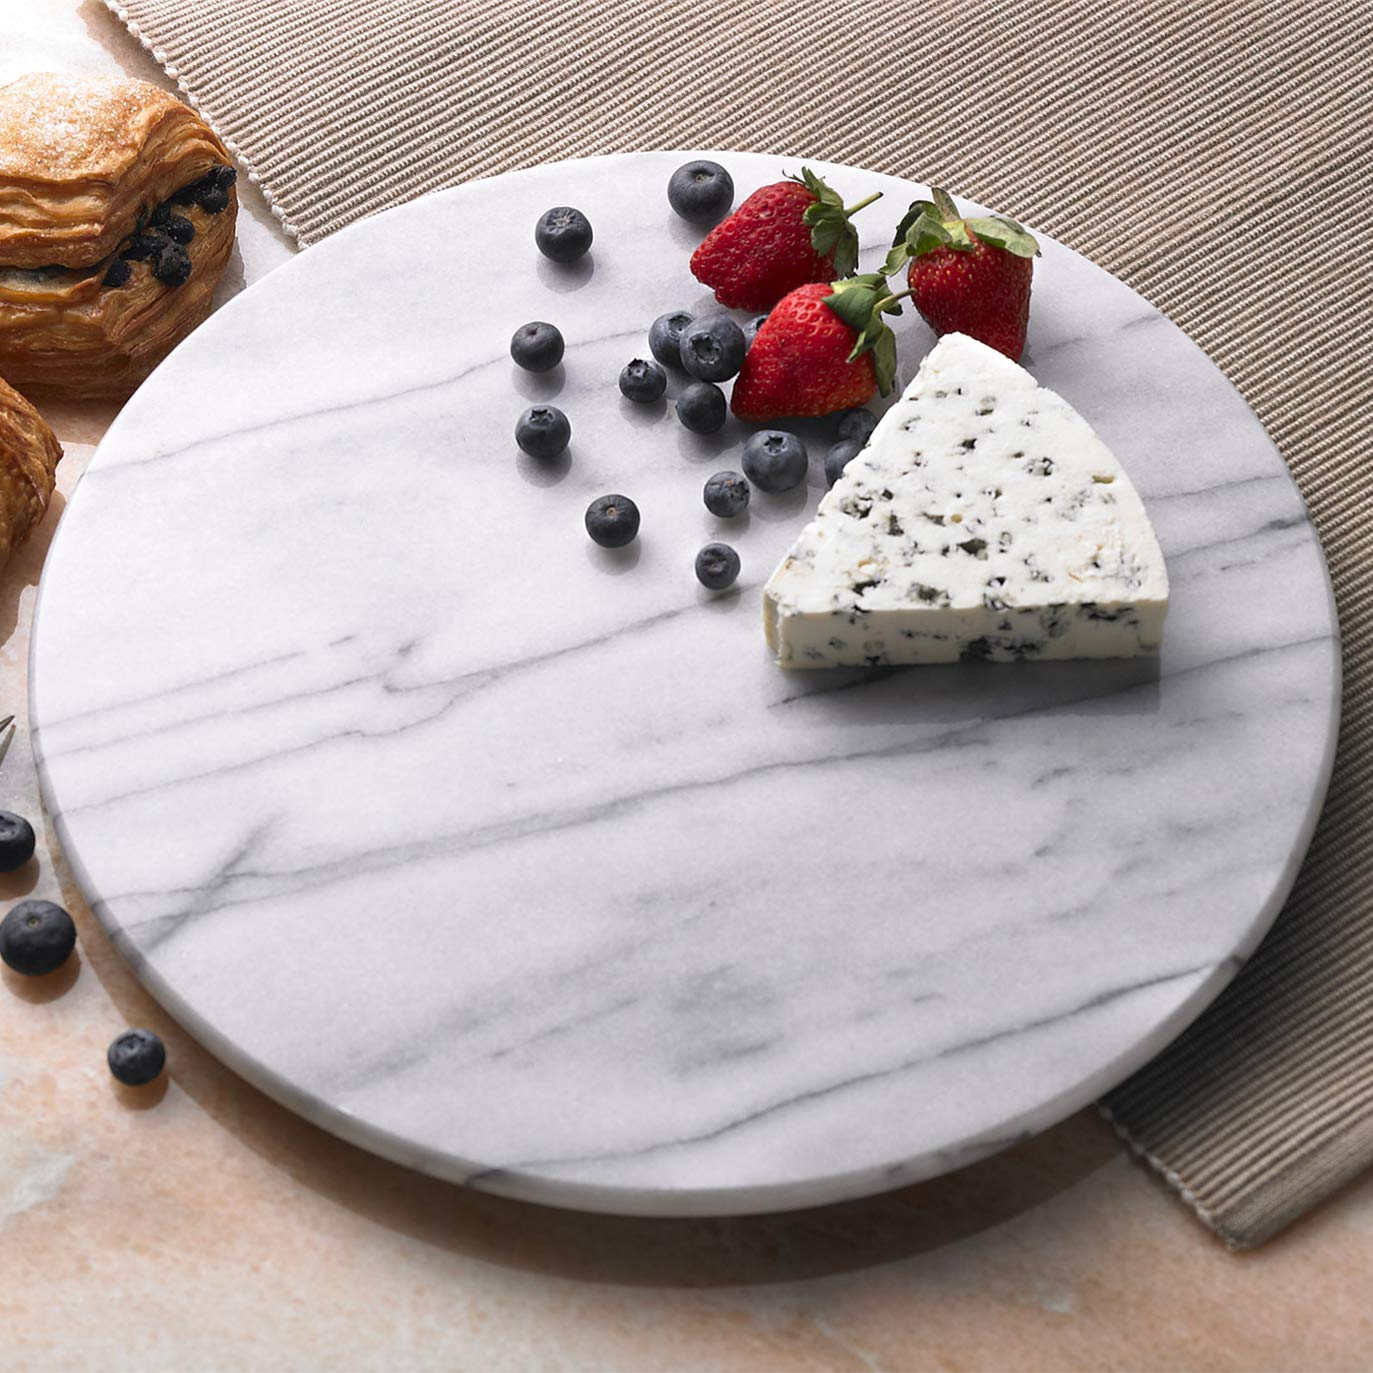 White Cheese Board Patterns May Very Trivet Creative Home 84077 Natural Marble 8 Diam